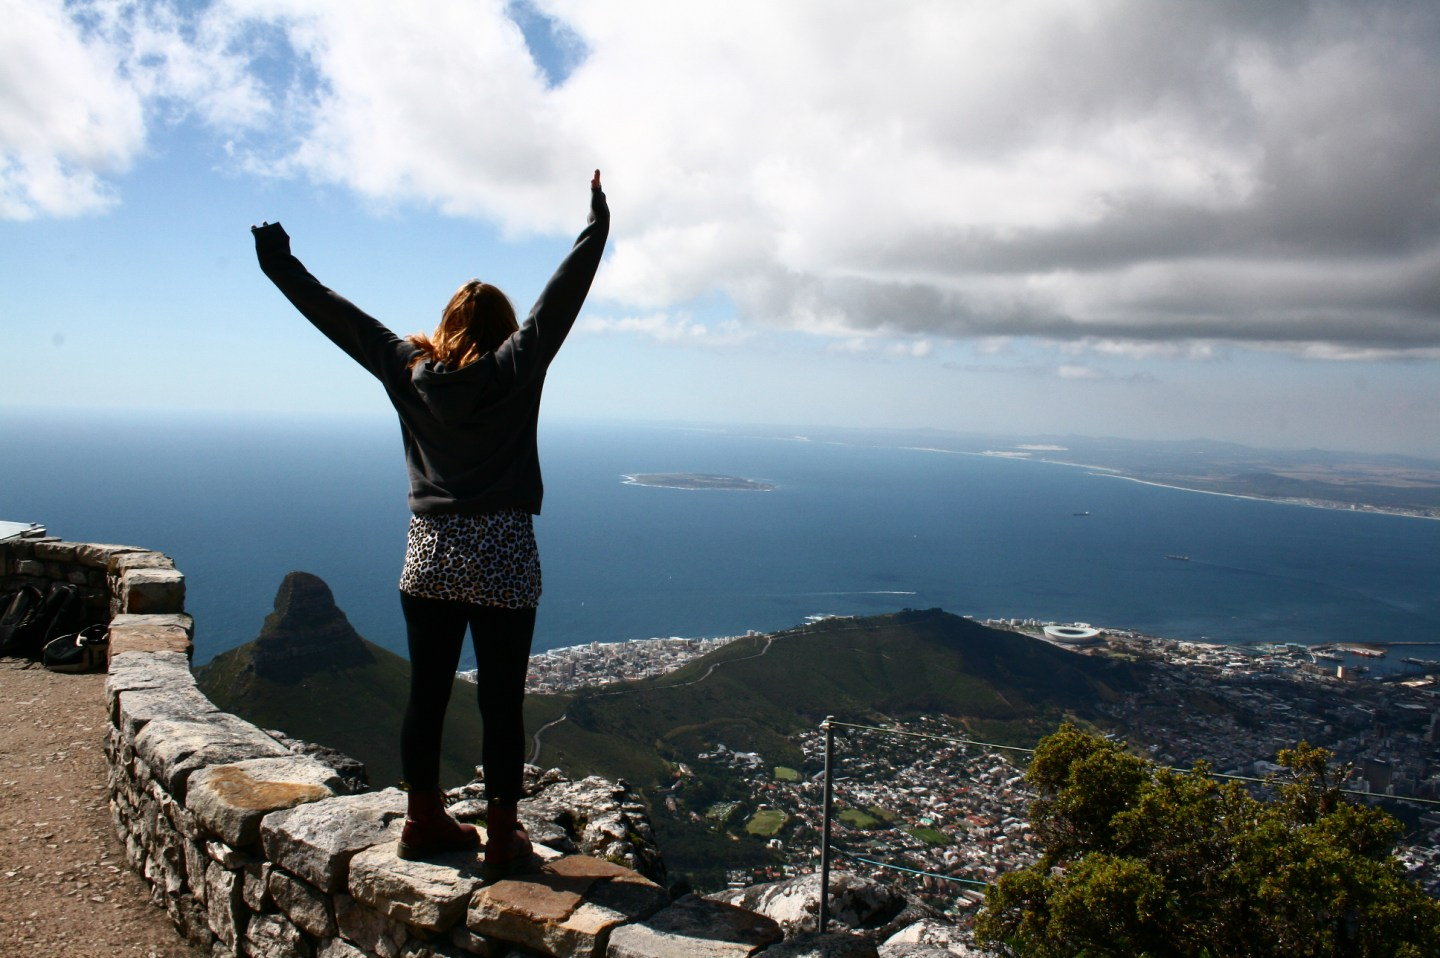 15 places to stop on your gap year - a post packed full of helpful information for planning your gap year route